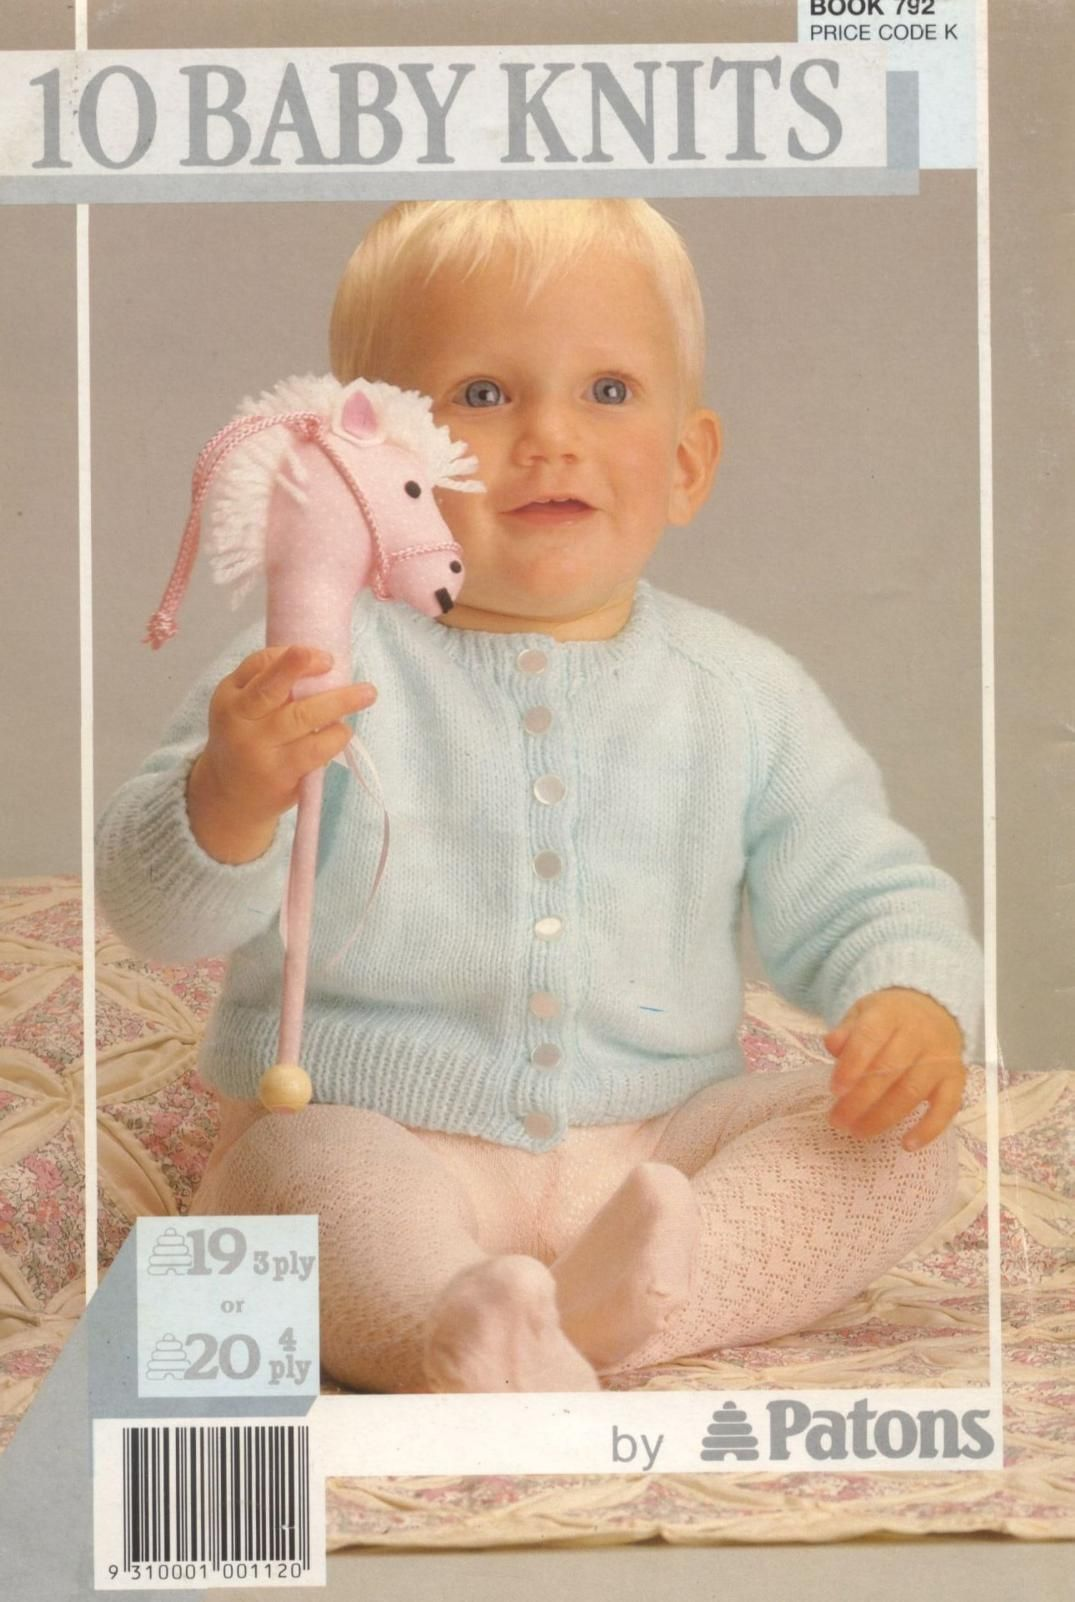 Patons 792 10 Baby Knits | knitted babywear-cardis | Pinterest ...